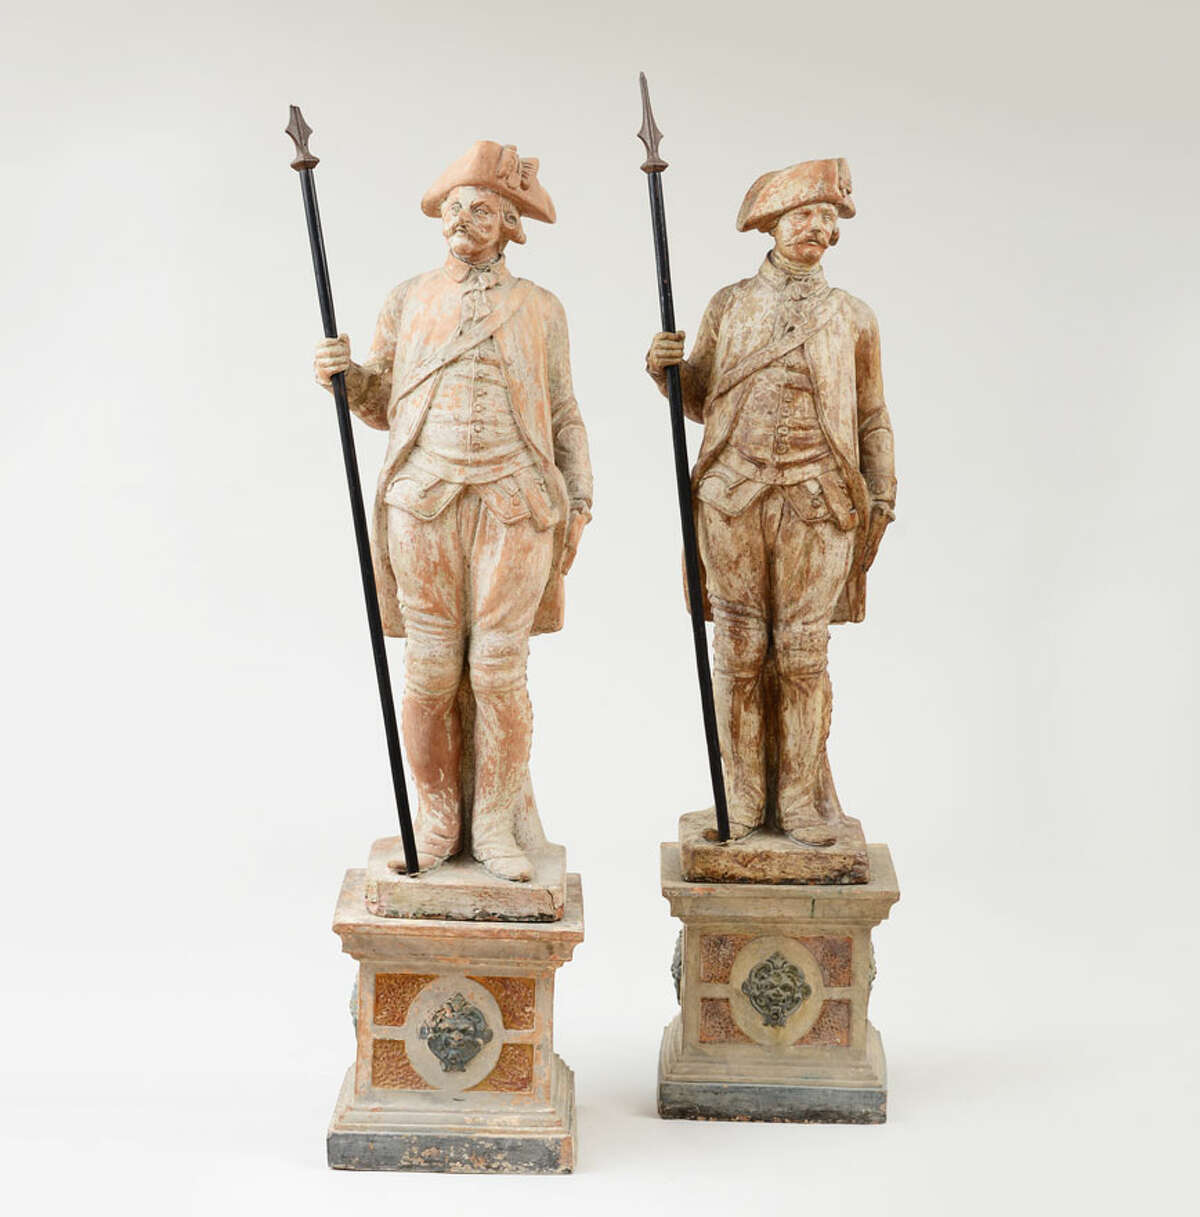 French terracotta soldiers are among the items being auctioned Oct. 28-29 at the Stair Galleries in Hudson. (image from stairgalleries.com)